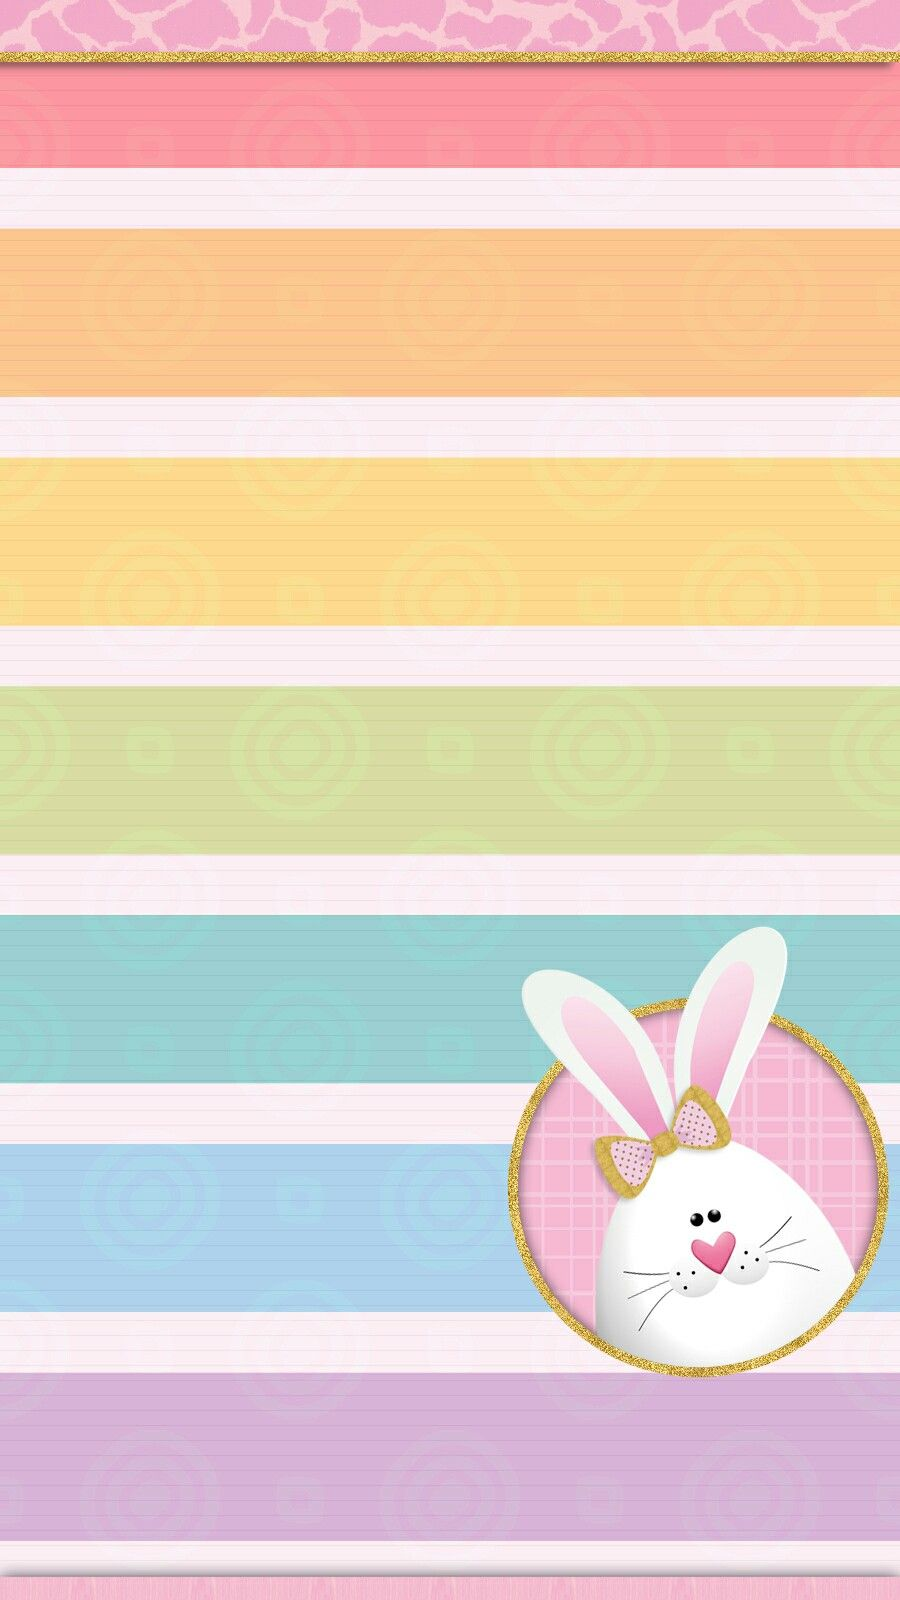 Easter bunny wallpaper iphone Cute walls by me